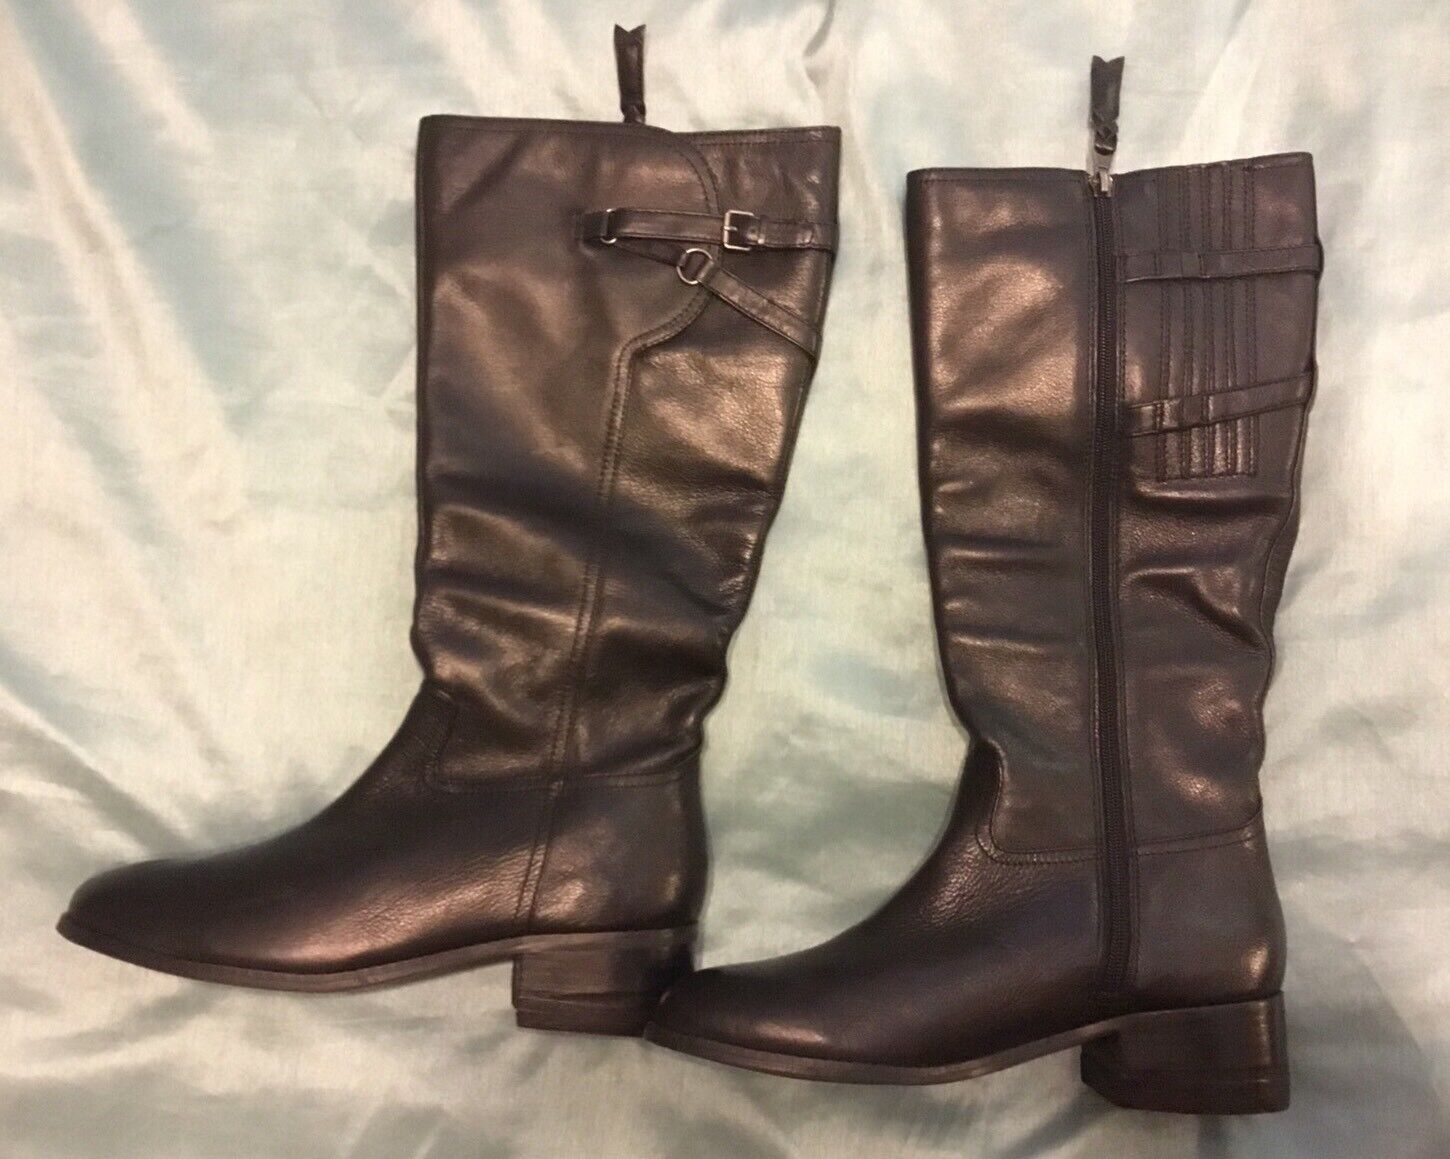 New -- Tredters women's lucky Too Wide Shaft Riding Boots Size 11N